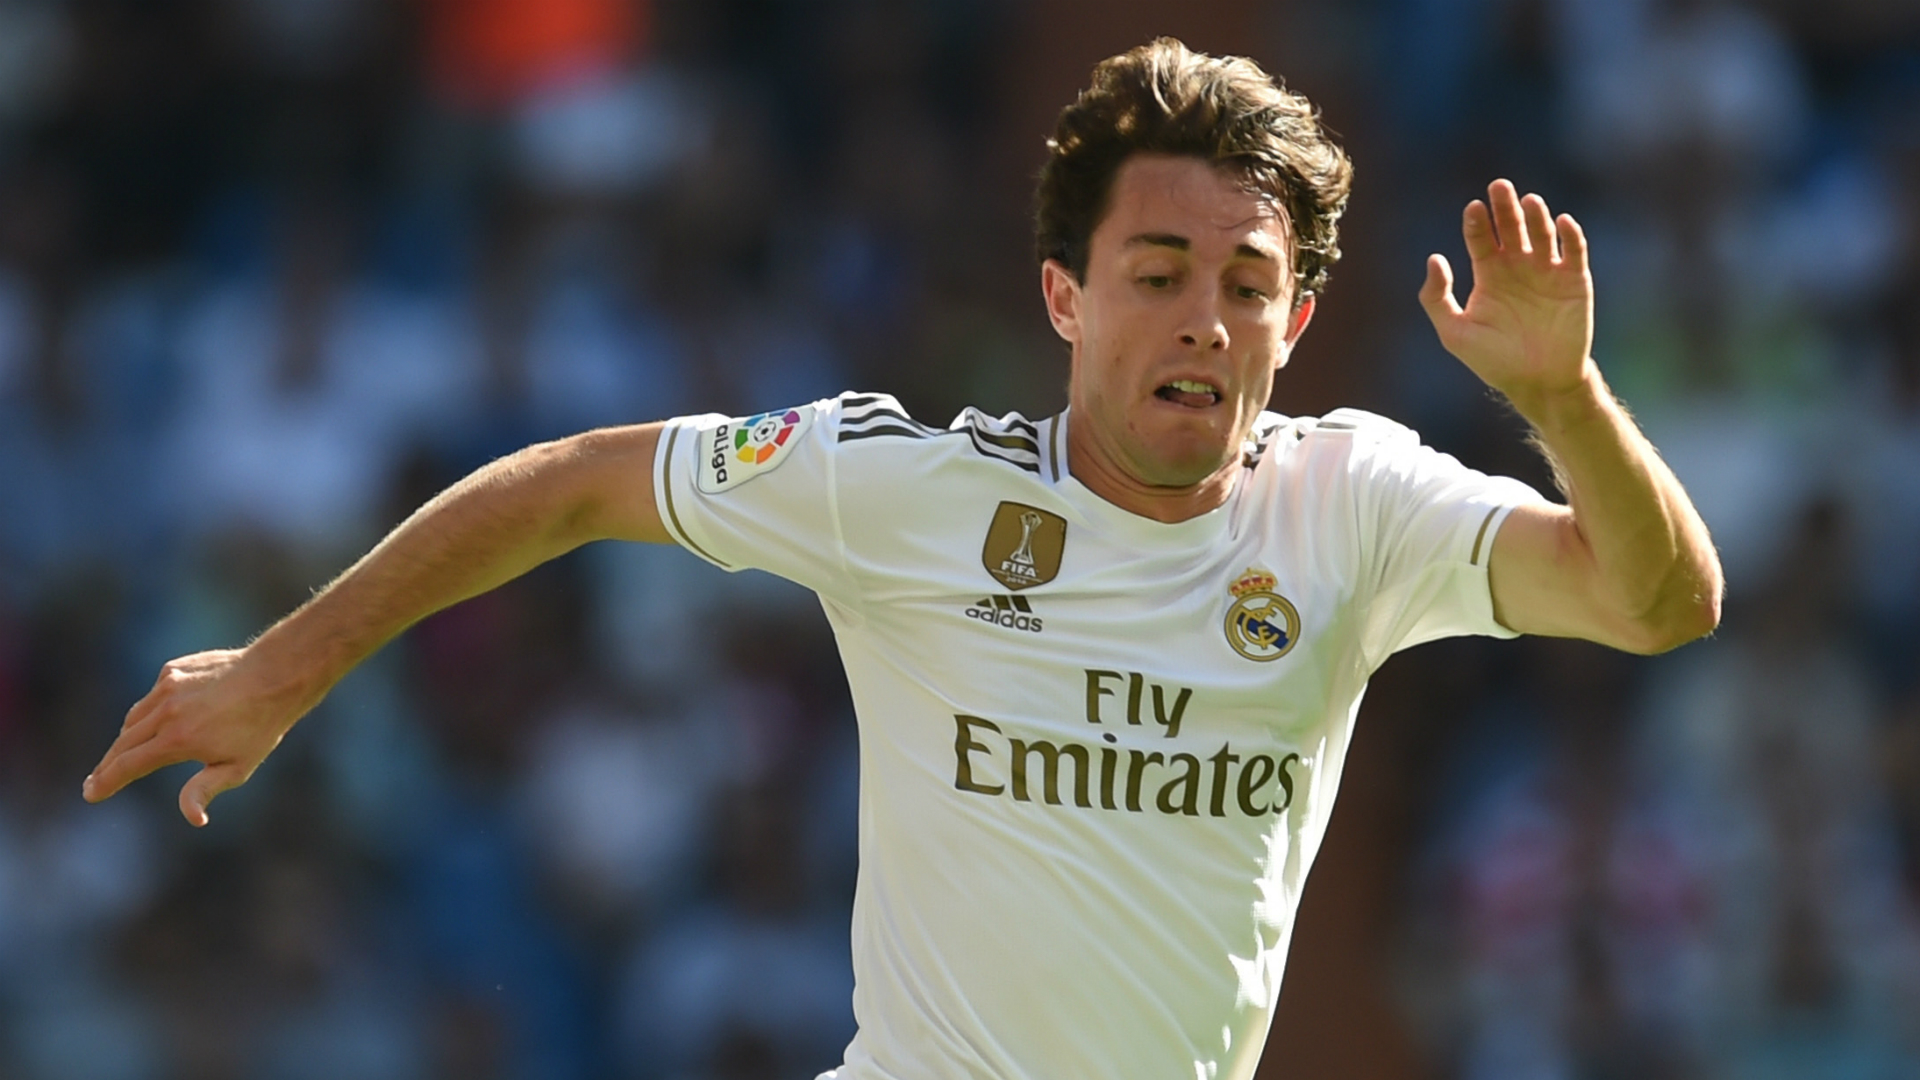 Madrid's Odriozola loaned to Bayern for rest of the season